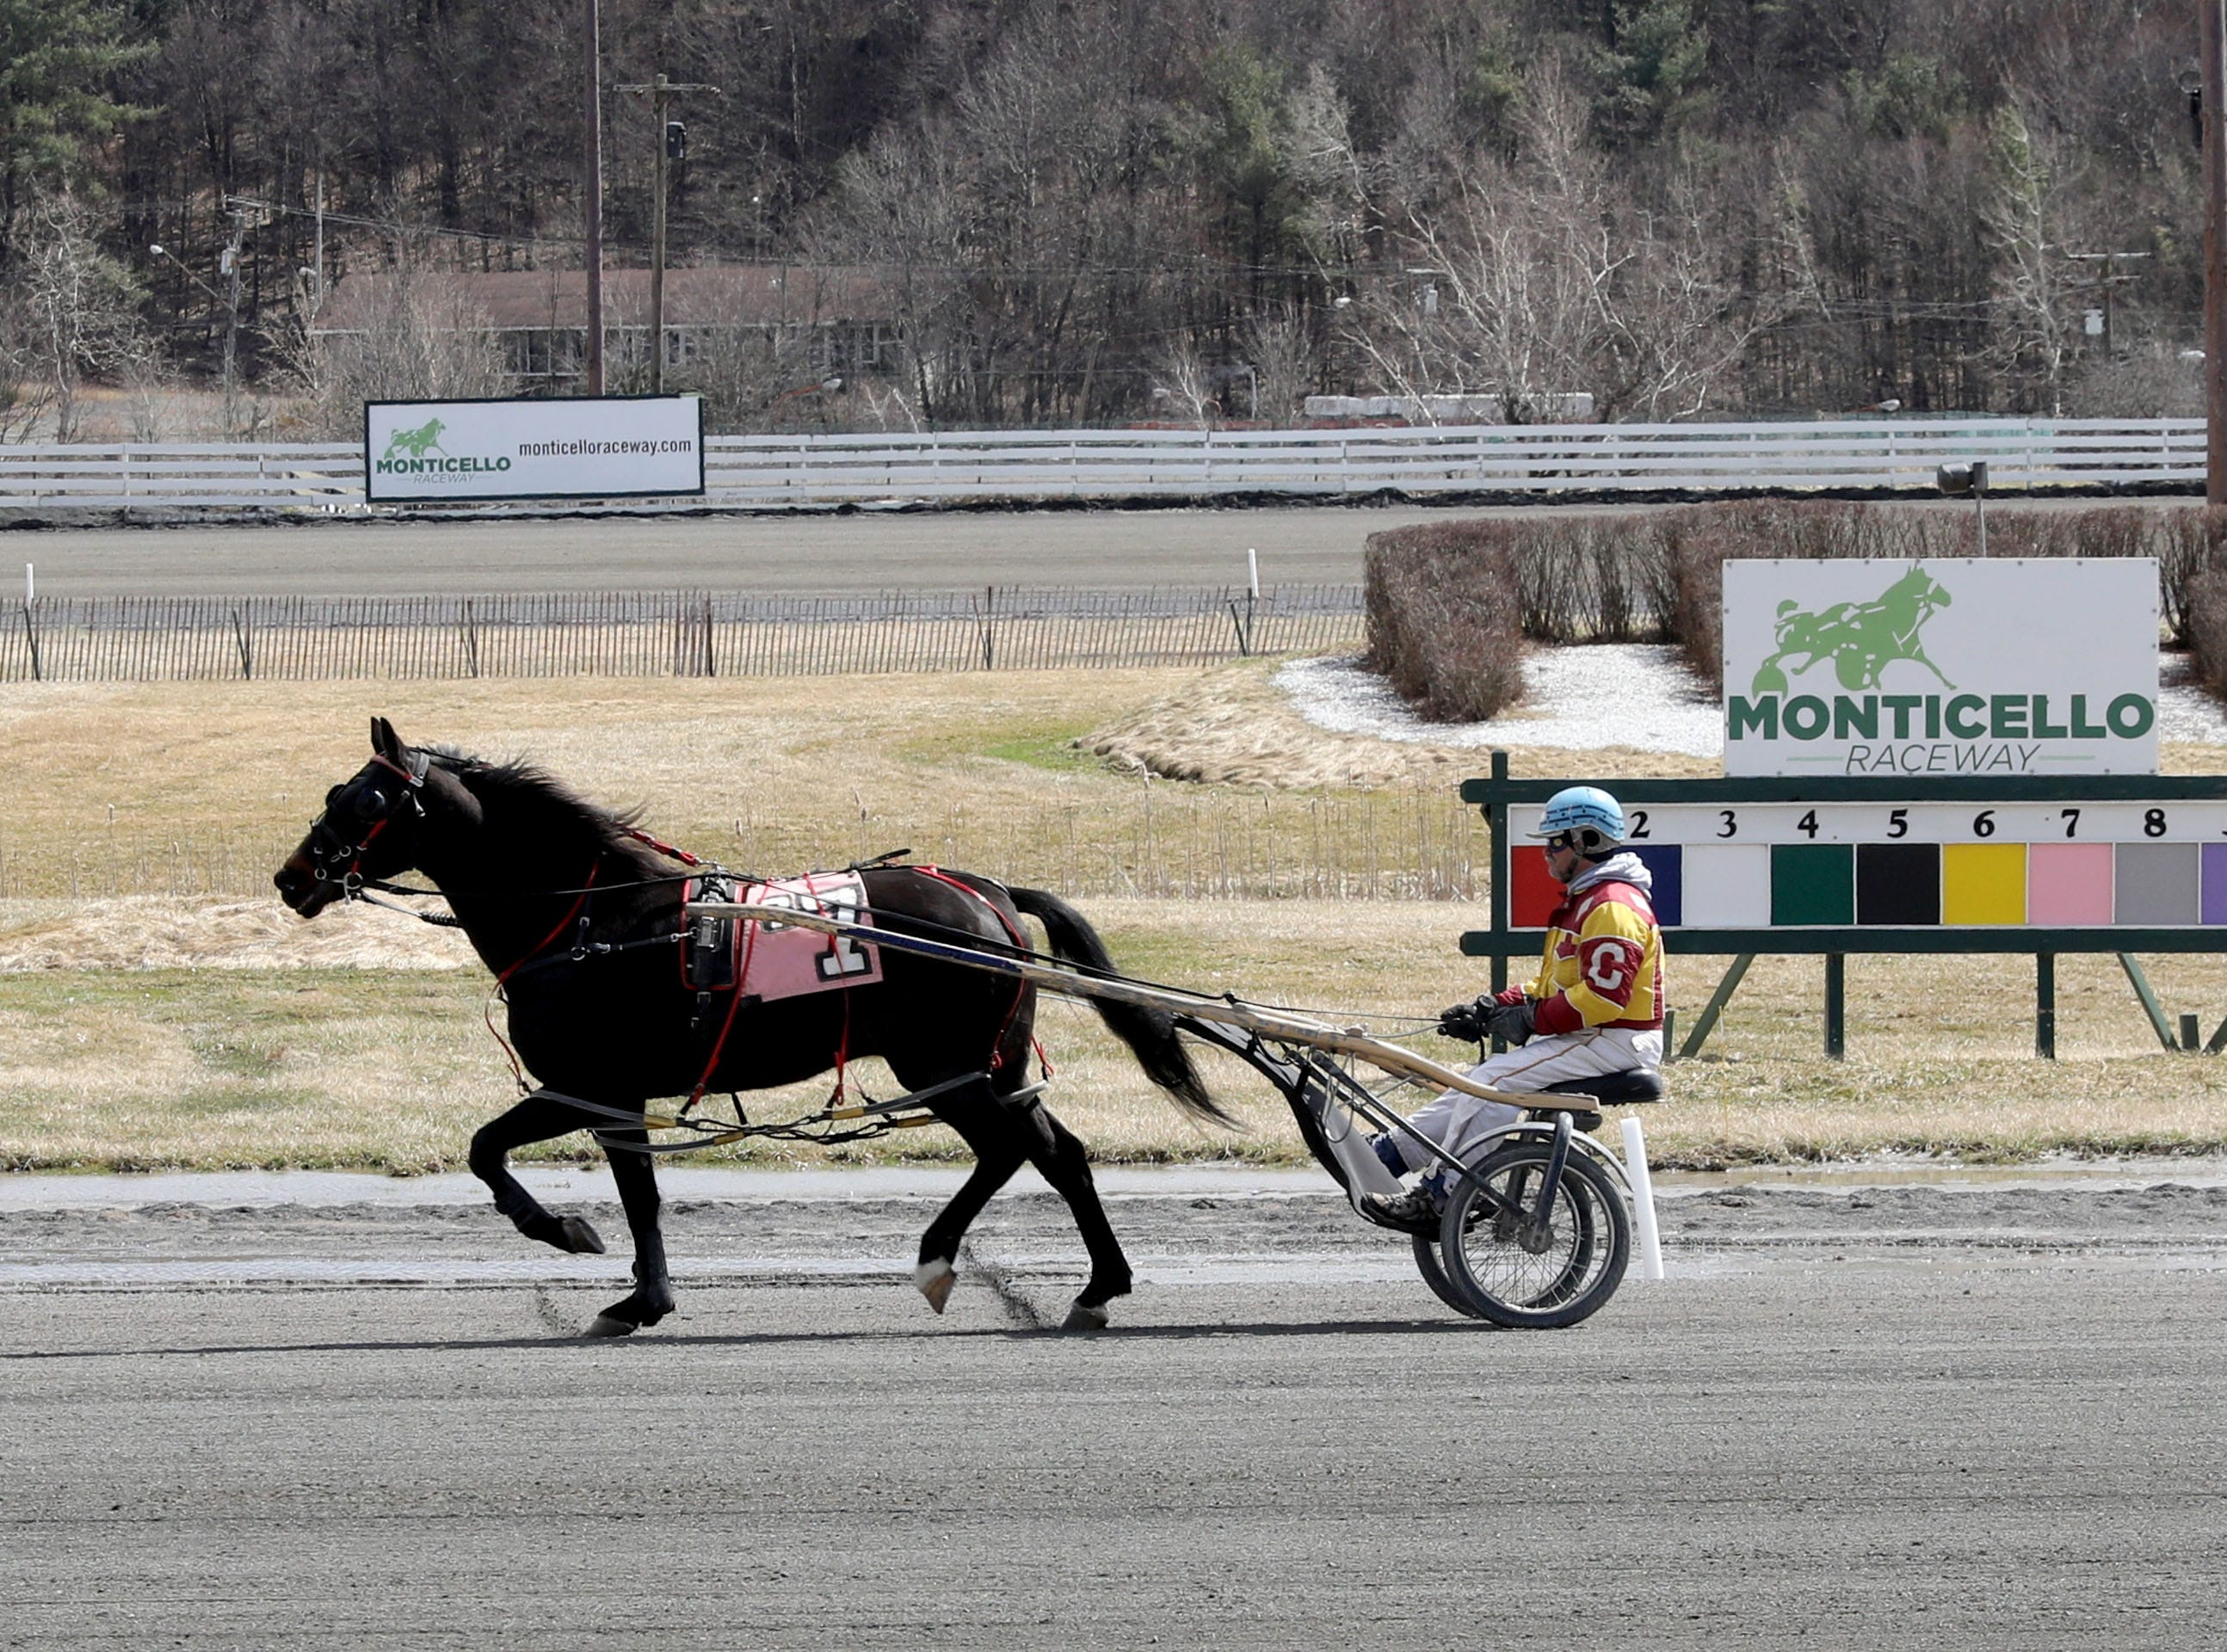 Harness racers warm-up their horses before a race at the Monticello Casino Raceway in Monticello, April 10, 2019.